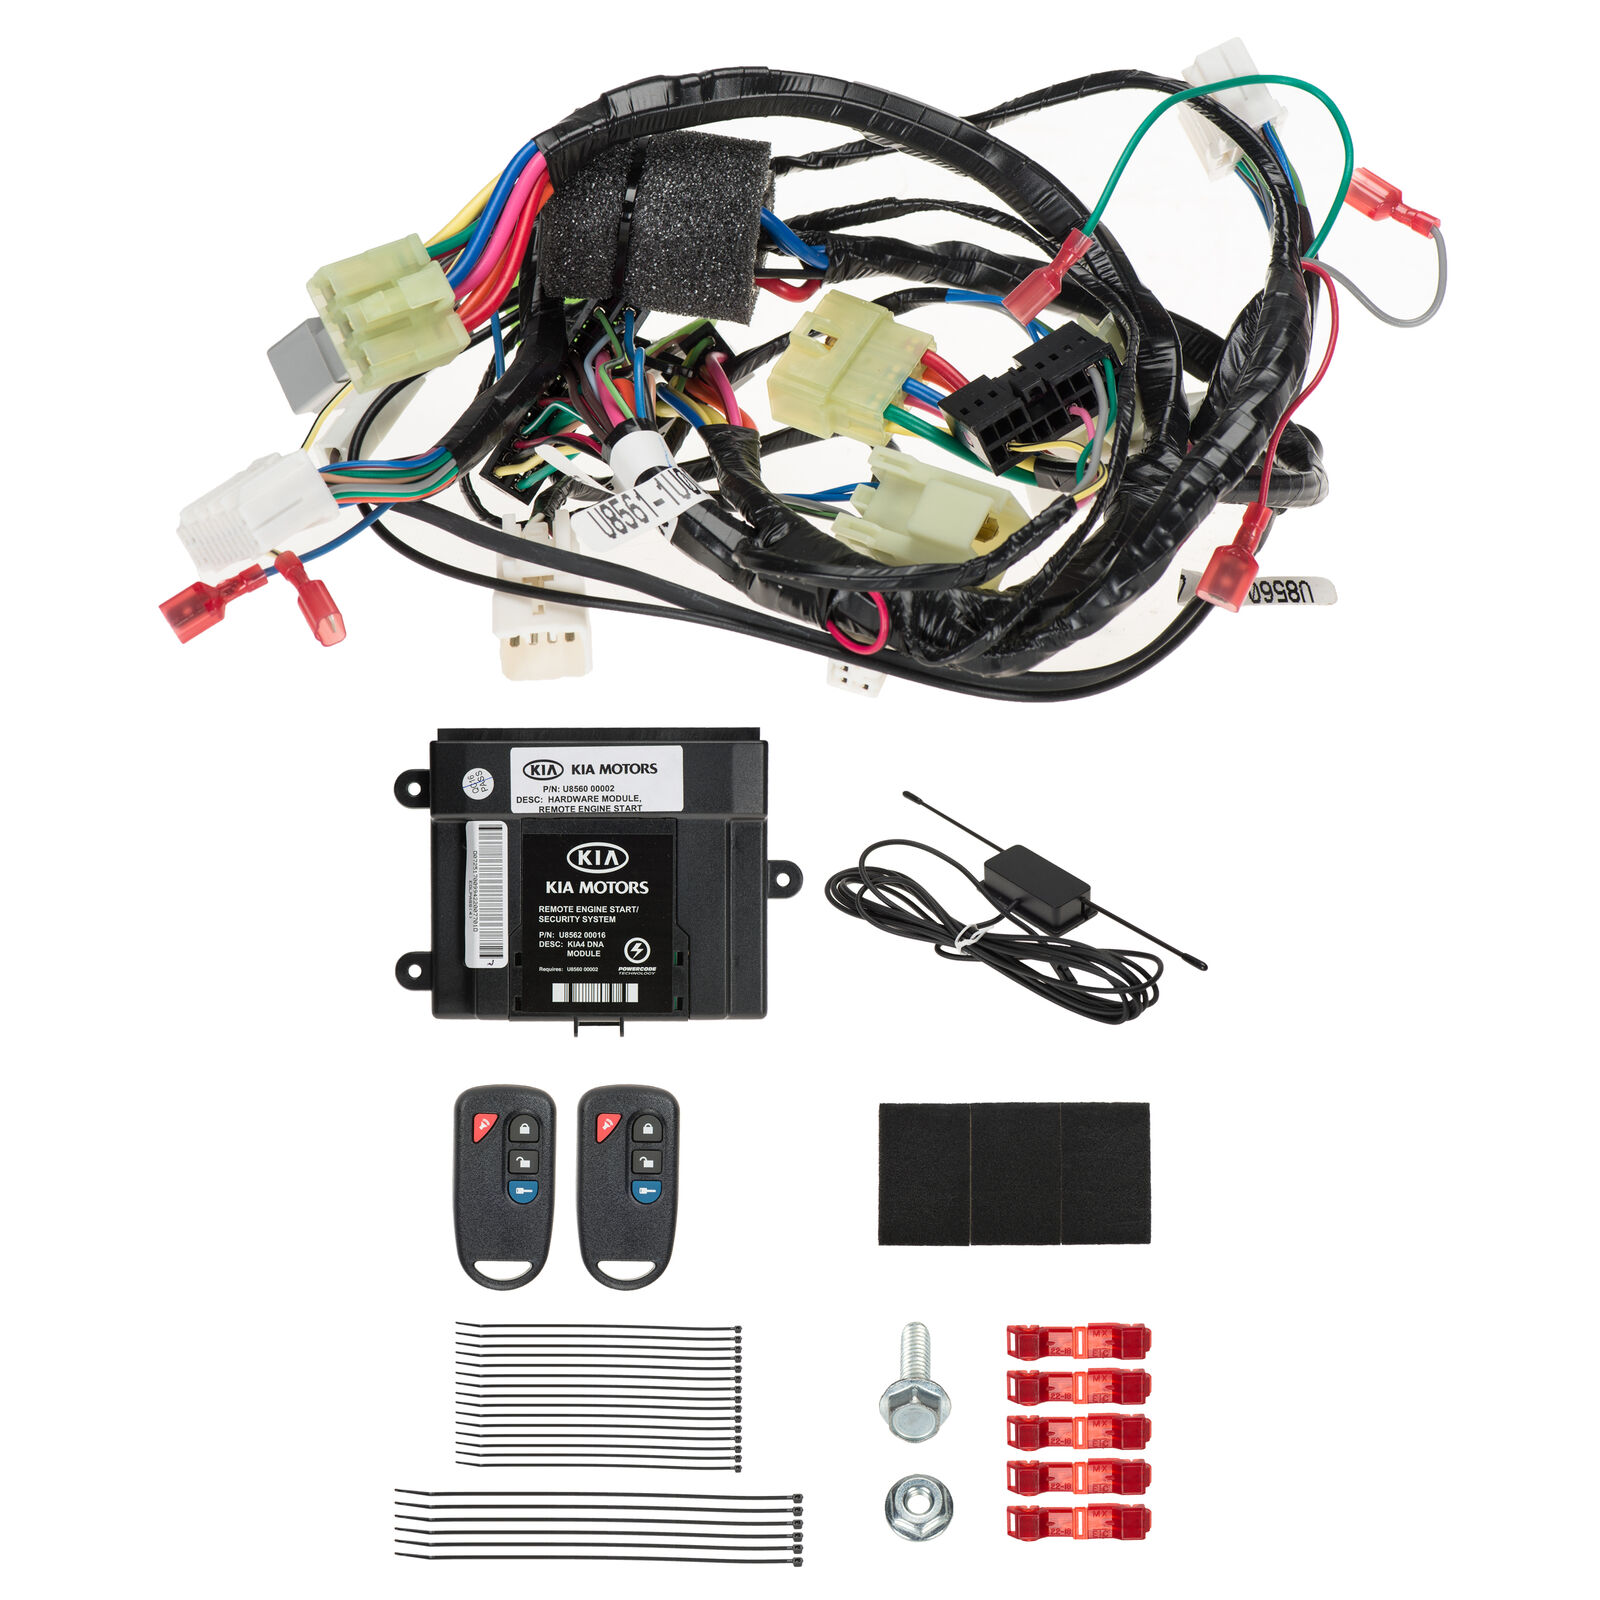 Kia Sorento Factory Remote Start Ebay 2011 Trailer Wiring Harness Location Norton Secured Powered By Verisign